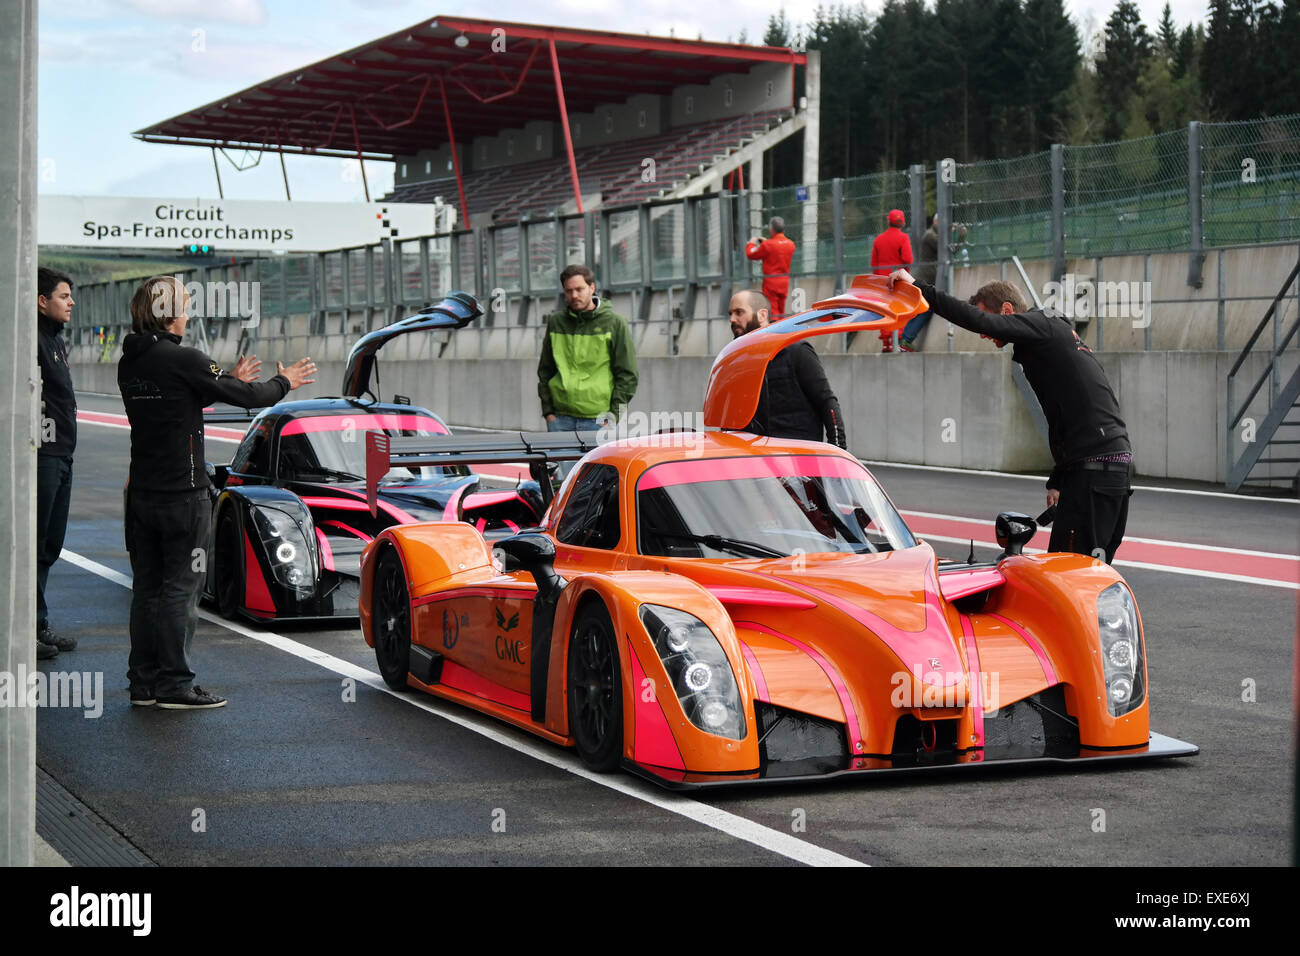 Radical Sportscars in the pitlane on Circuit de Spa-Francorchamps - Stock Image